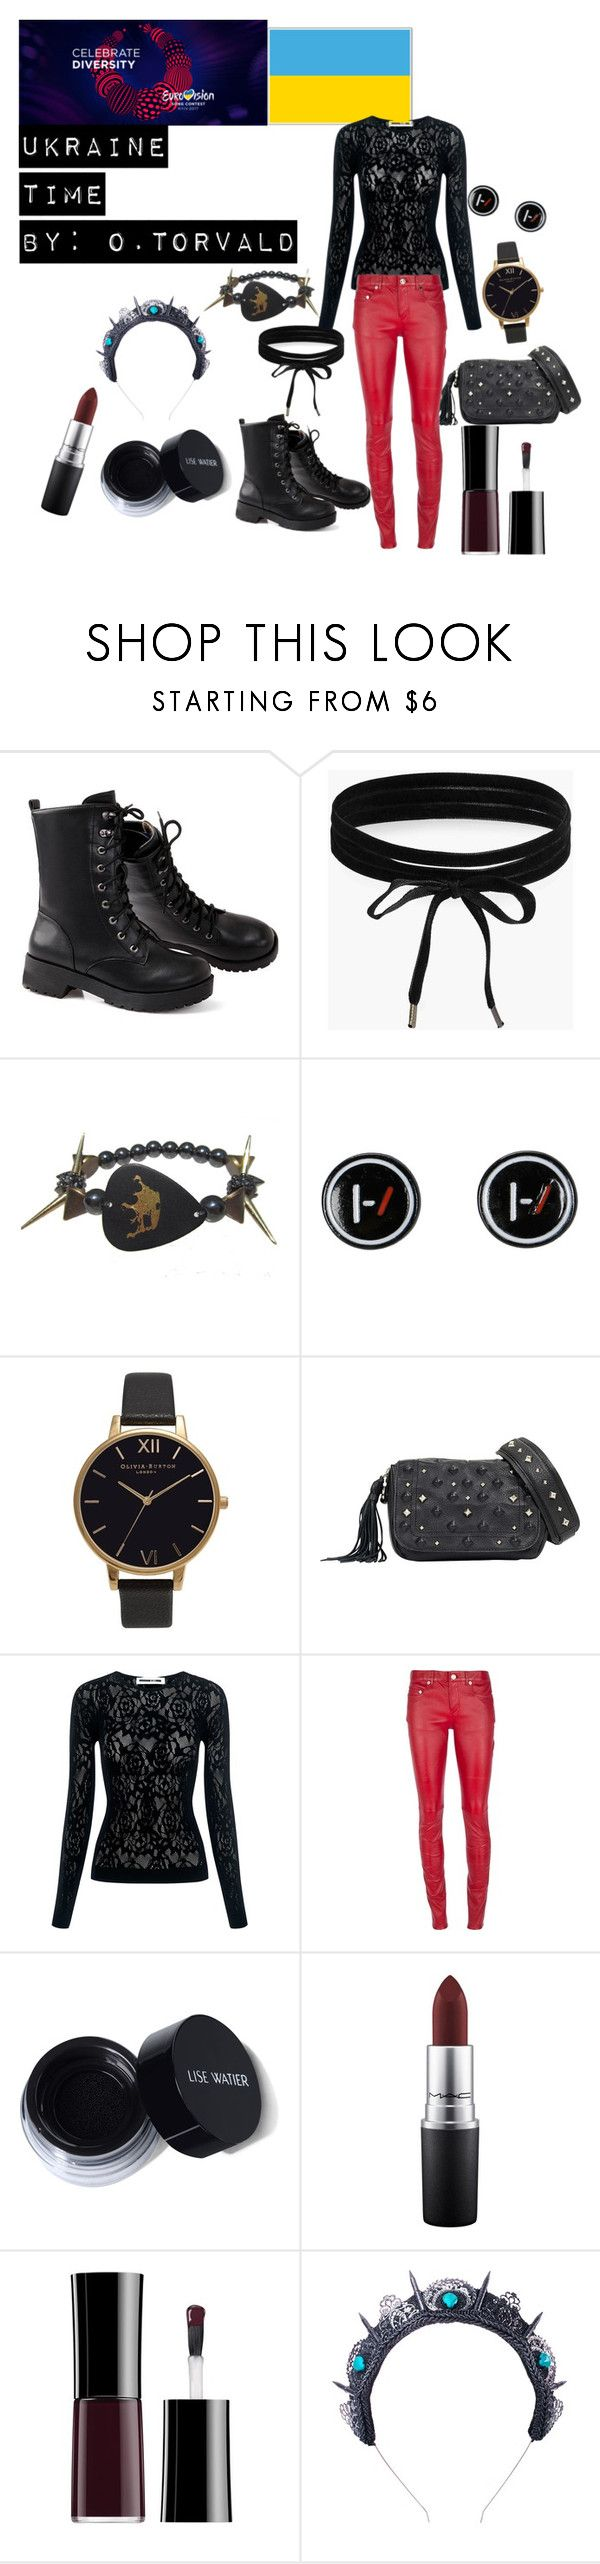 """Ukraine Eurovision 2017"" by grace-buerklin ❤ liked on Polyvore featuring Boohoo, Electric Picks, Hot Topic, Olivia Burton, McQ by Alexander McQueen, Yves Saint Laurent, MAC Cosmetics, Loschy Designs and eurovision2017"